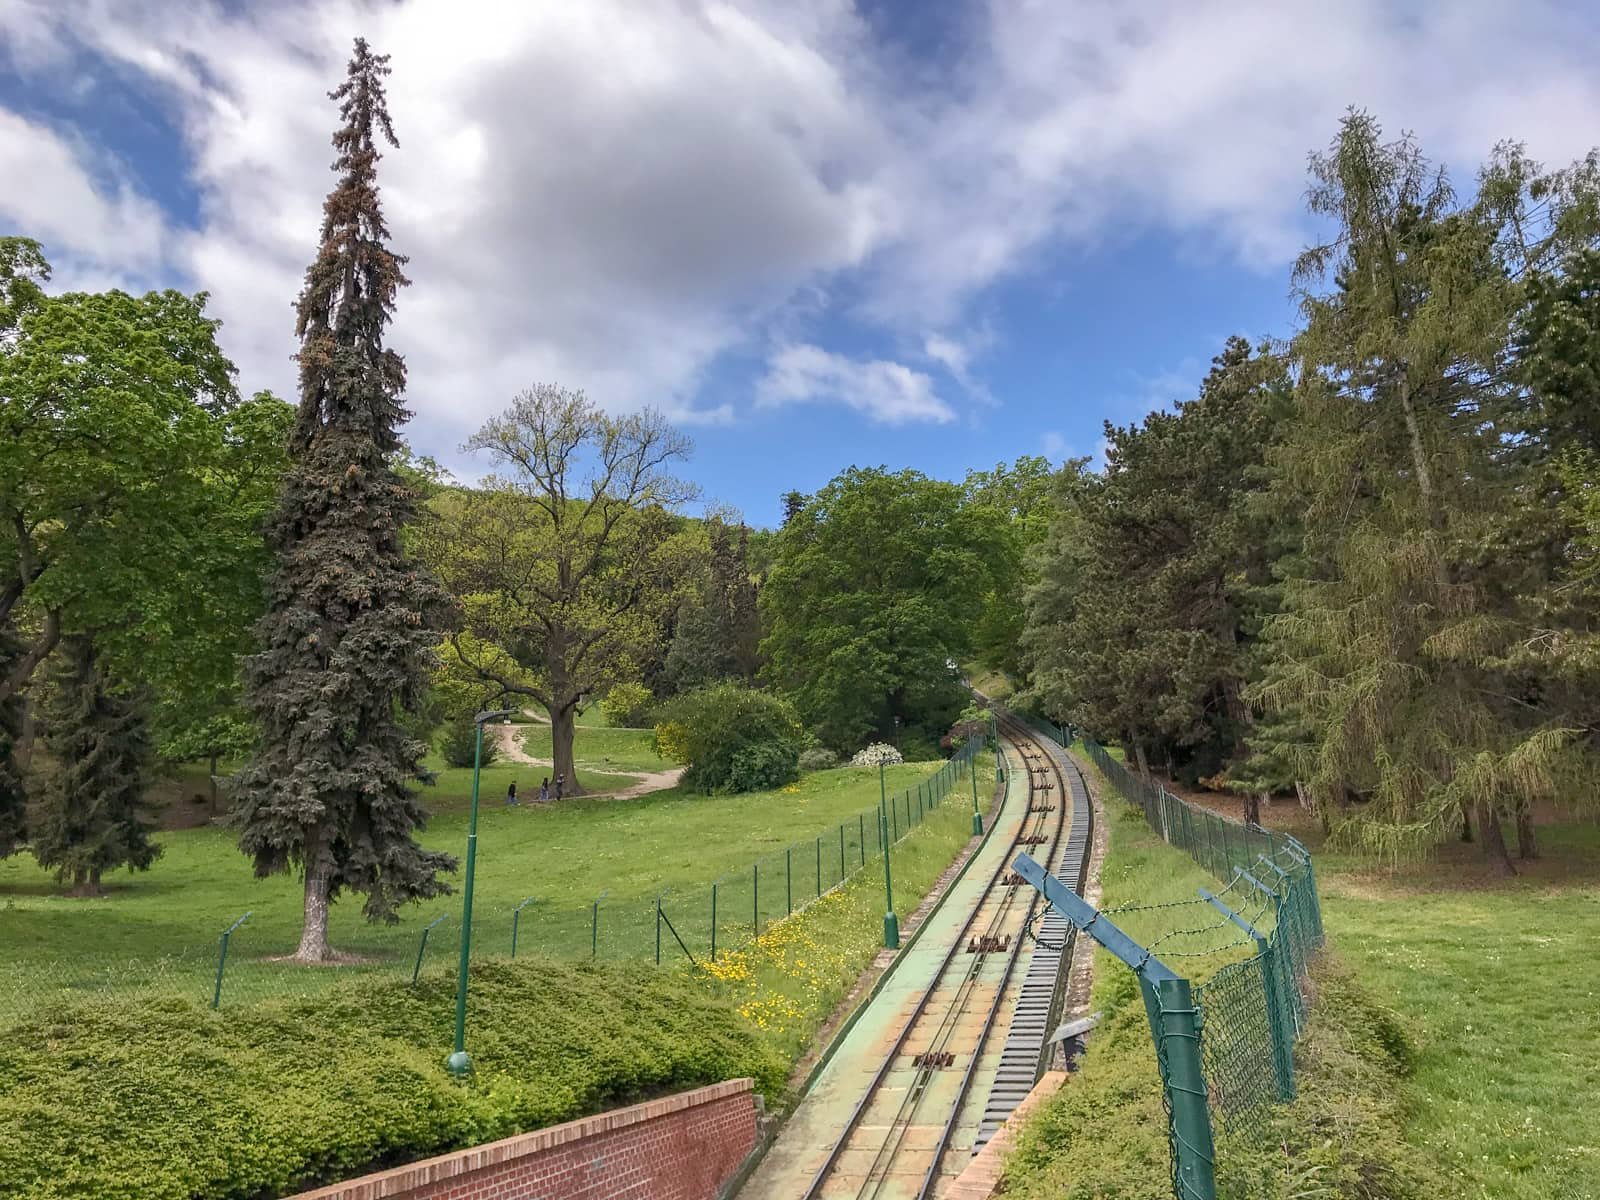 A railway going uphill through some trees. The tracks are fenced off by green wire fencing.